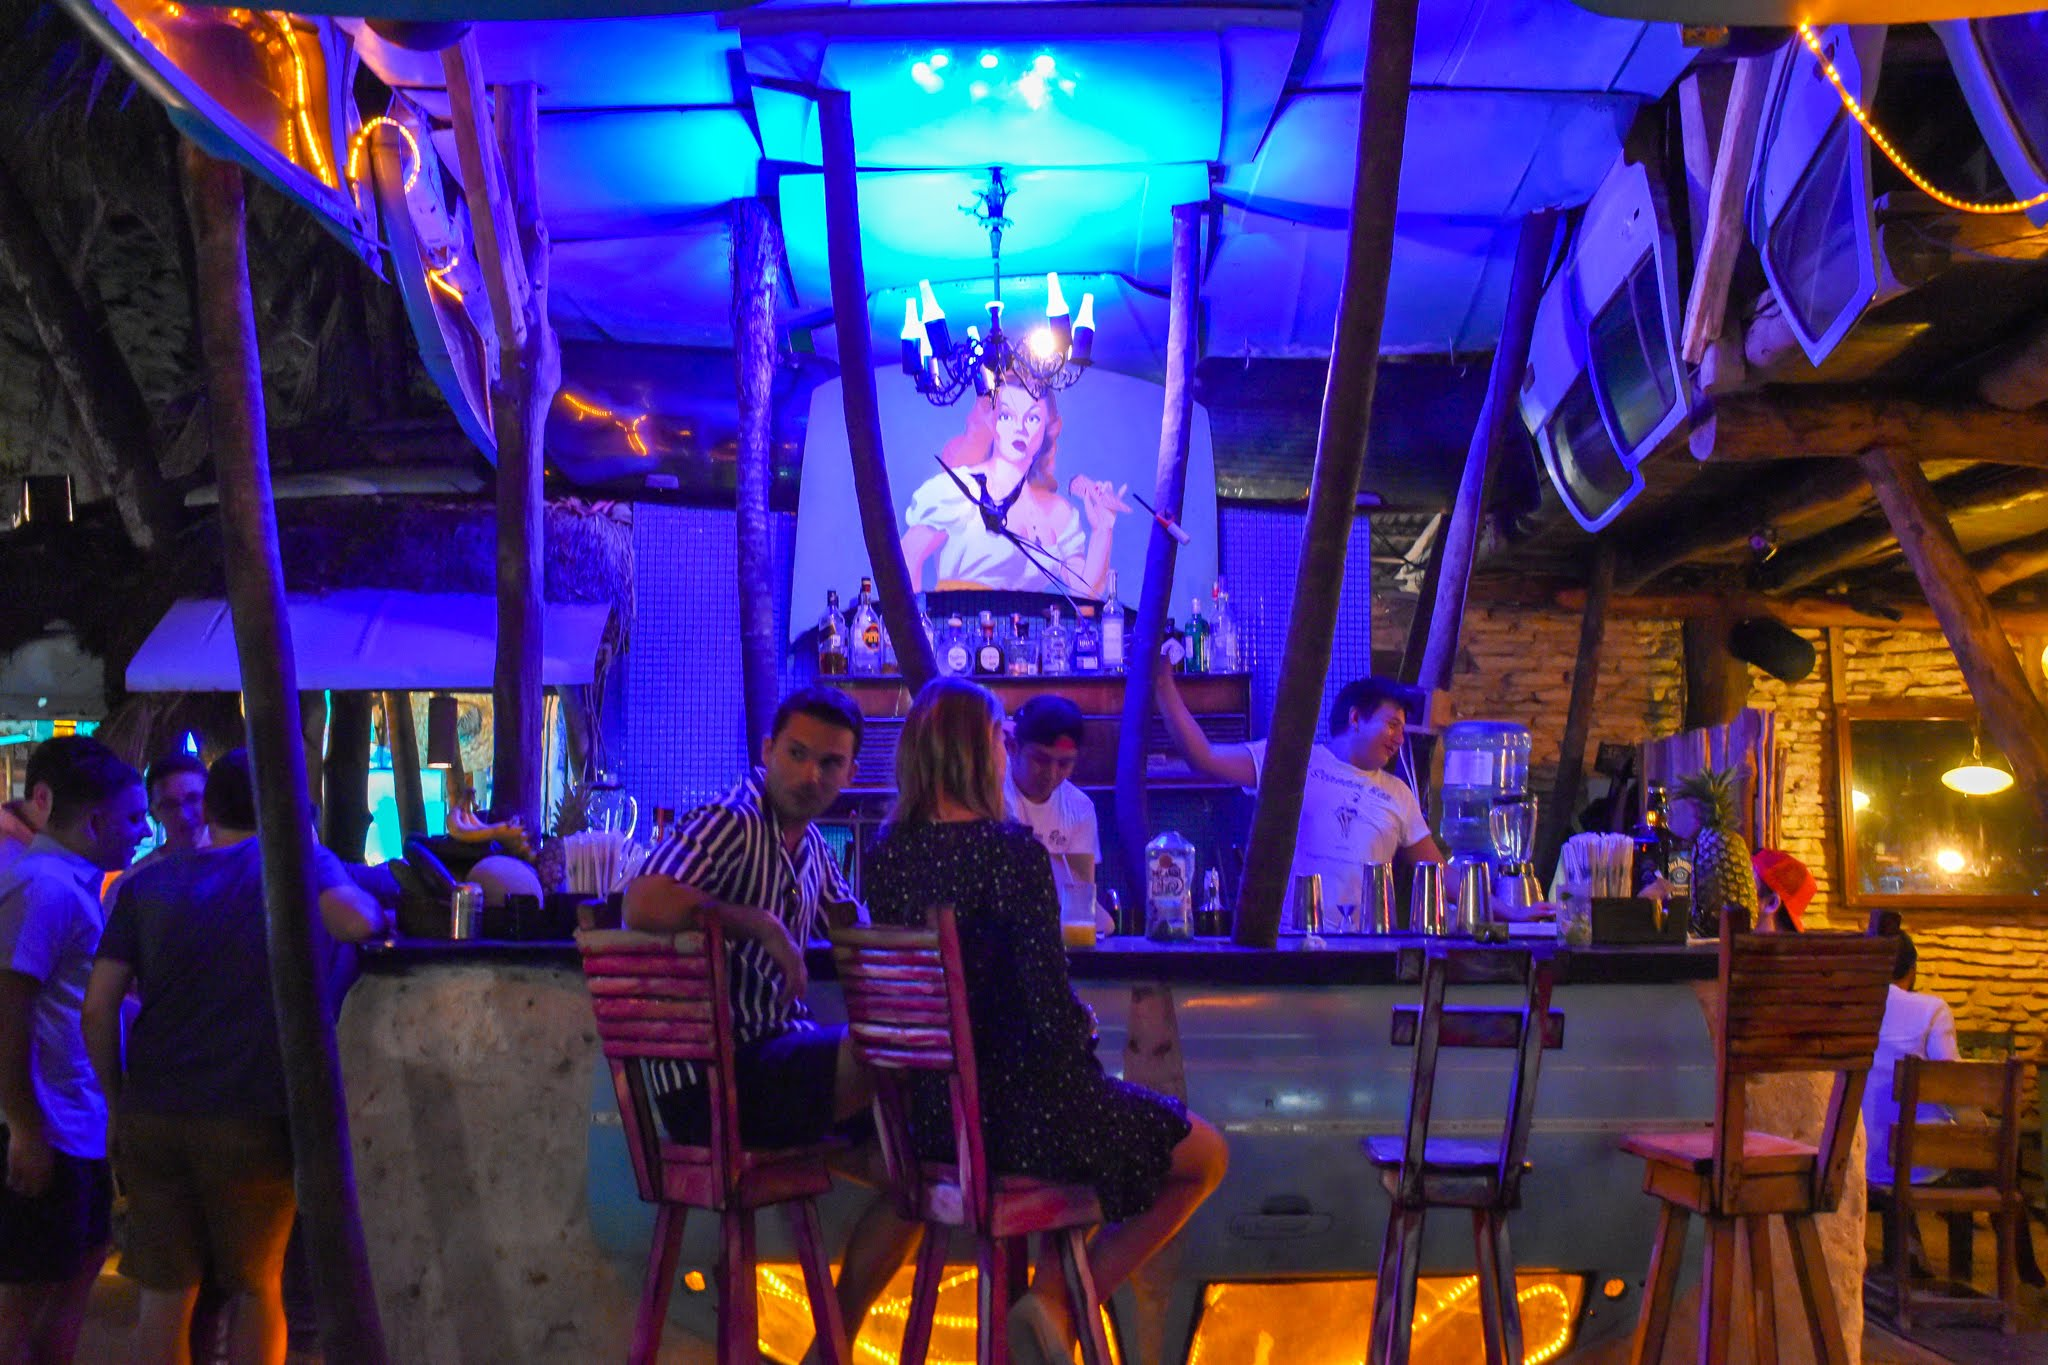 Uprooted-Traveler-Vegan-Weekend-in-Tulum-Mexico-i-scream-bar.jpg